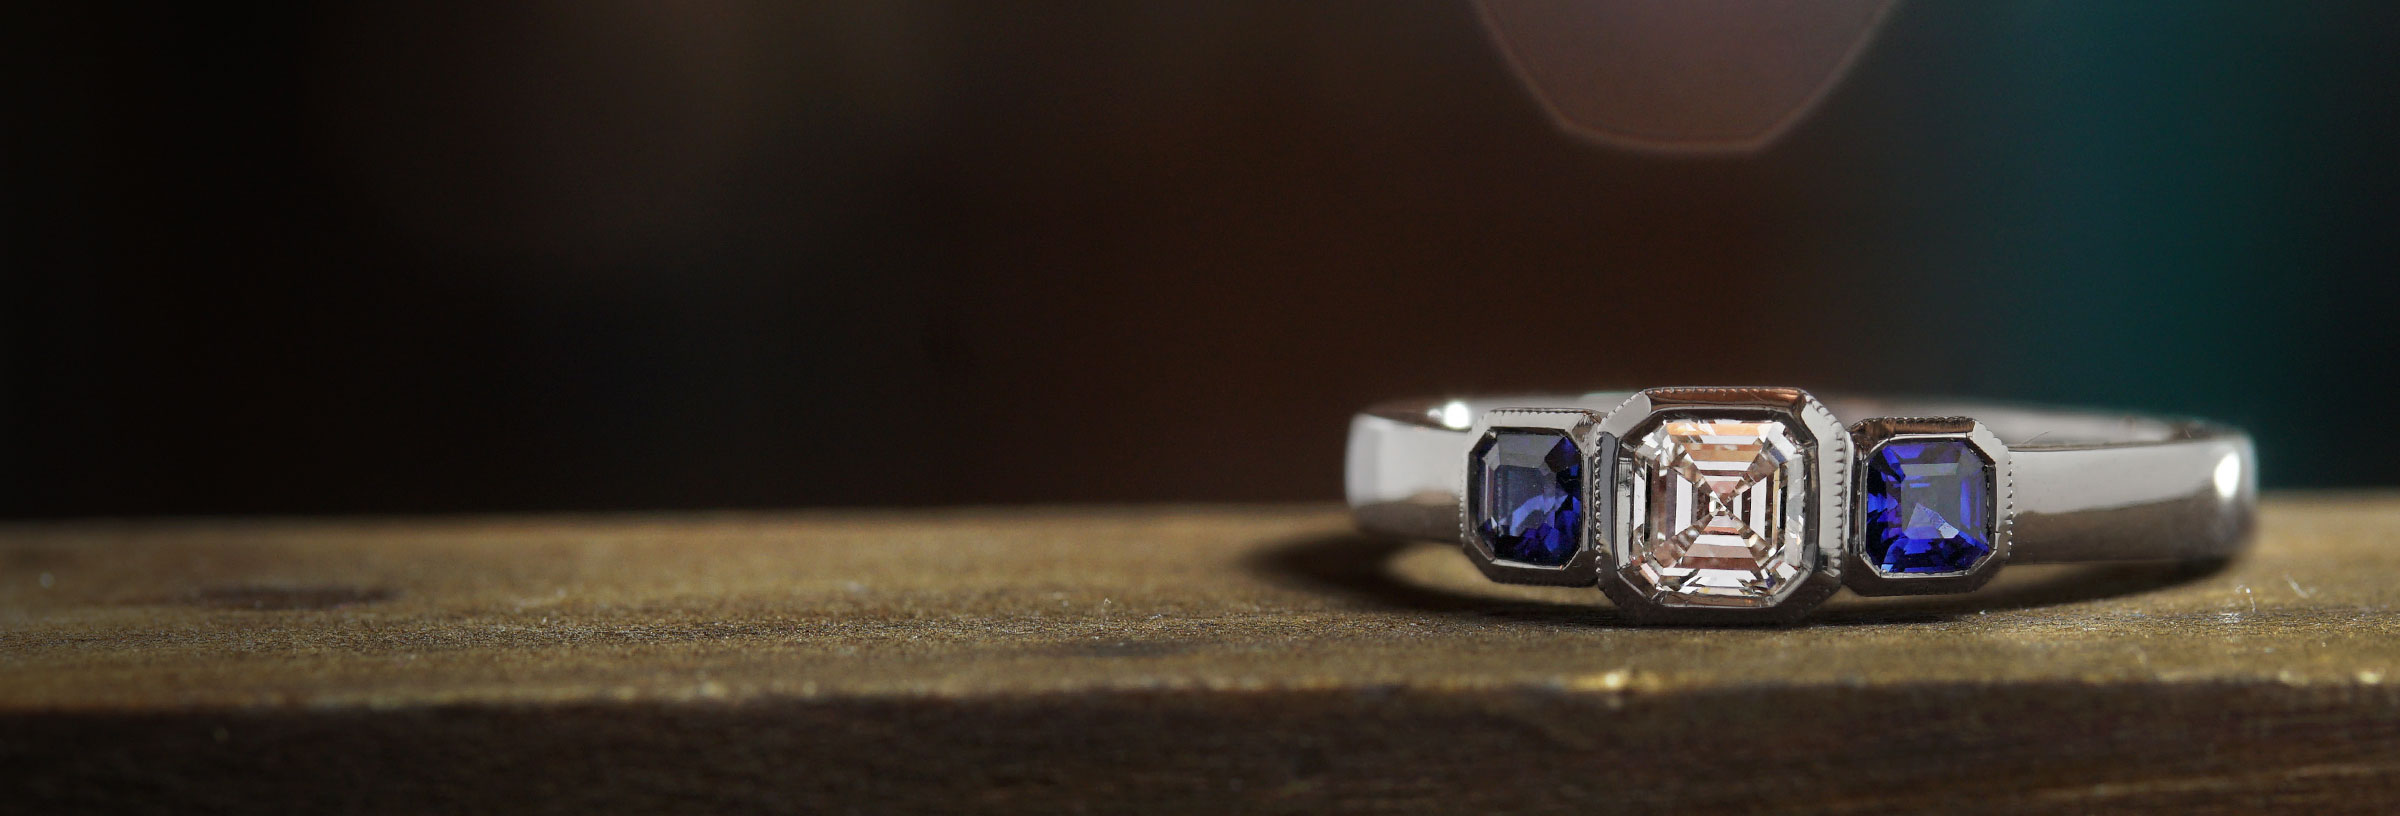 platinum-asscher-cut-diamond-and-octagonal-sapphire-trilogy-engagement-ring